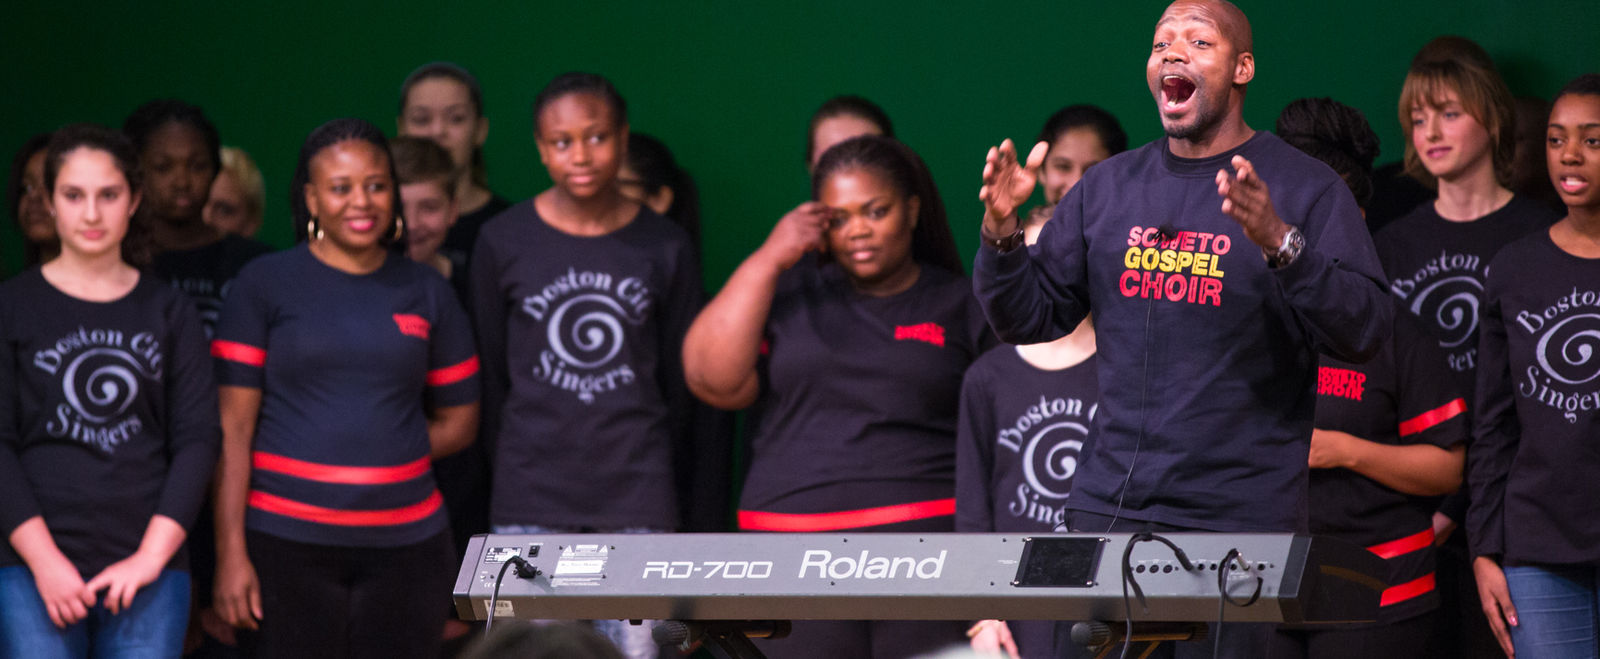 Soweto gospel troupe performs with a piano and chorus on stage.